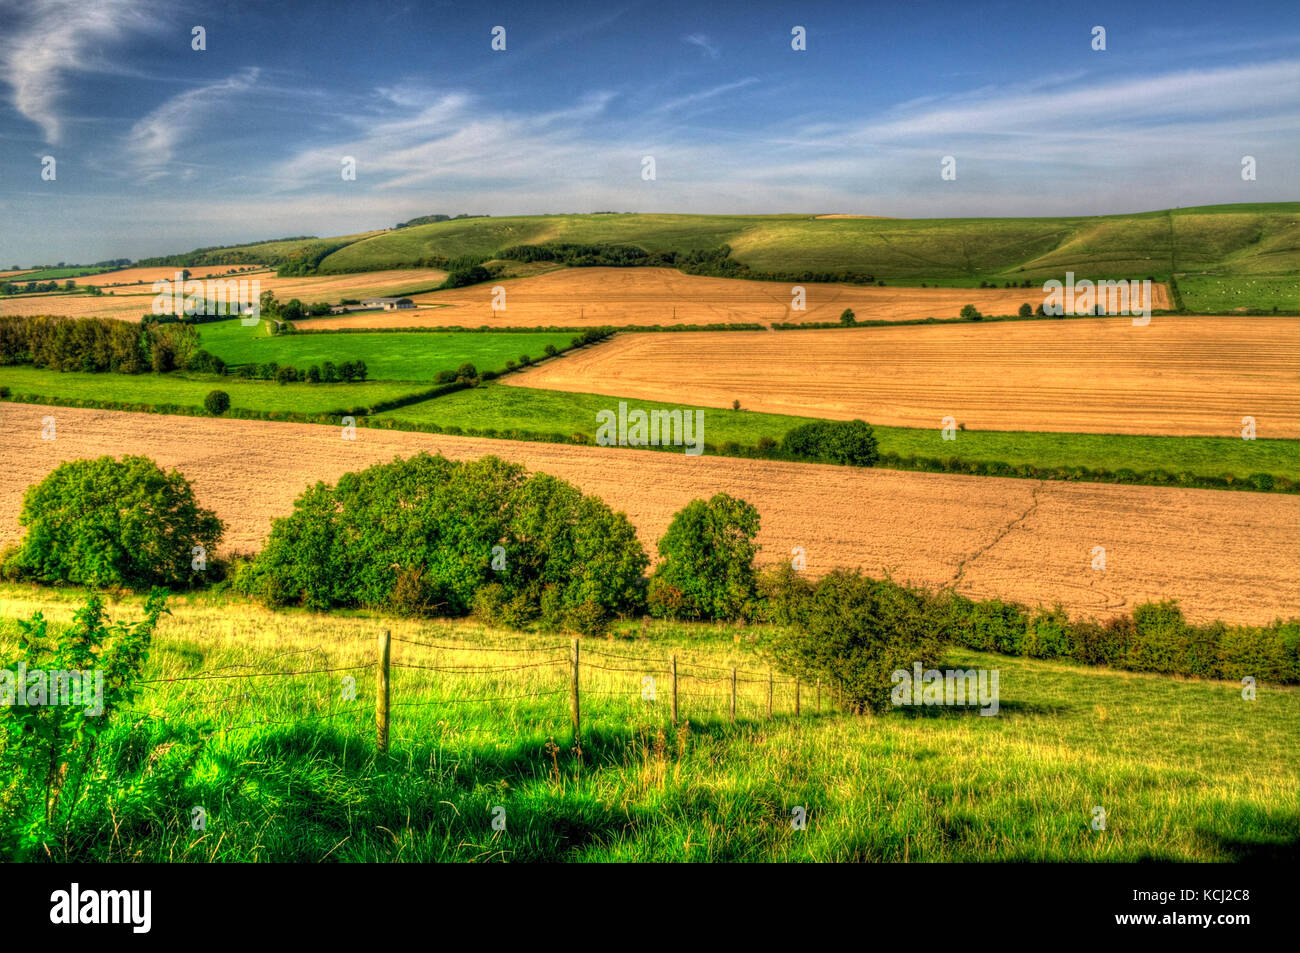 A patchwork of fields and hedgerows in the Wiltshire landscape, processed as an HDR image. - Stock Image